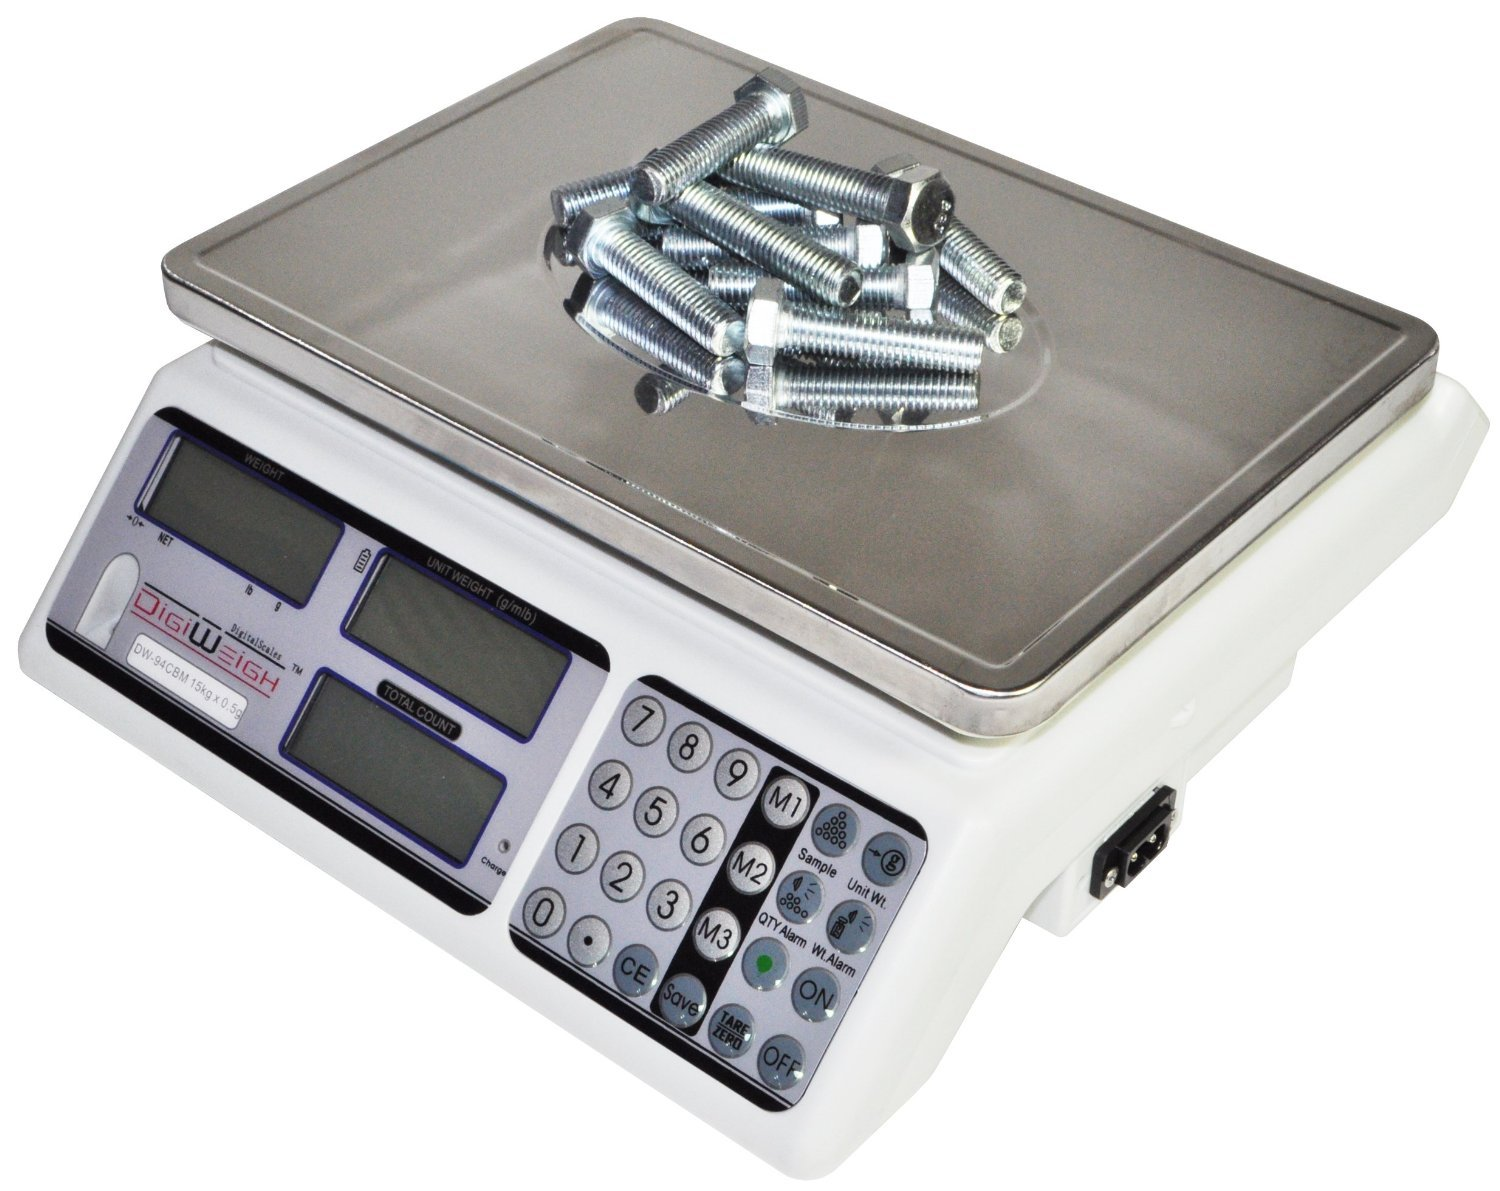 Digiweigh 15KG/0.5G Counting Scale (DW-94CBM)